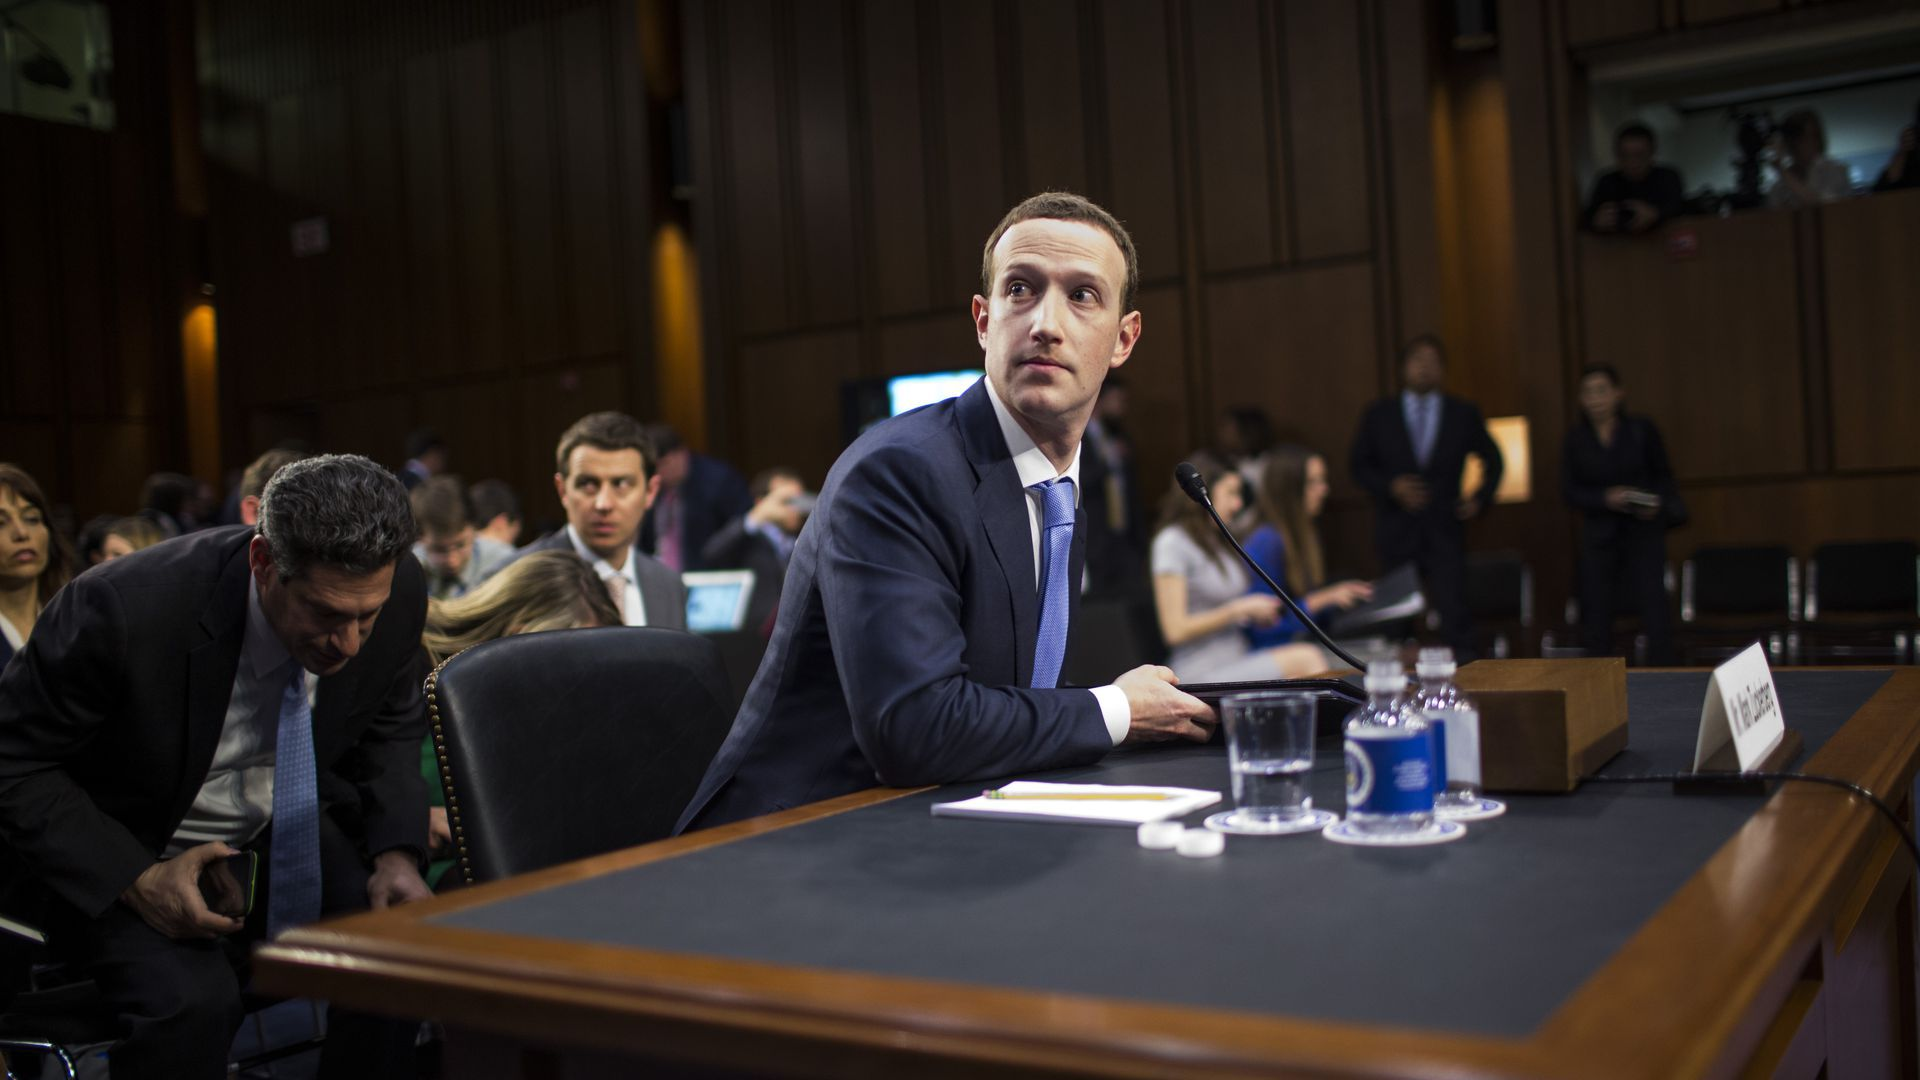 Facebook CEO Mark Zuckerberg testified before Congress last year. Photo: Zach Gibson/Getty Images